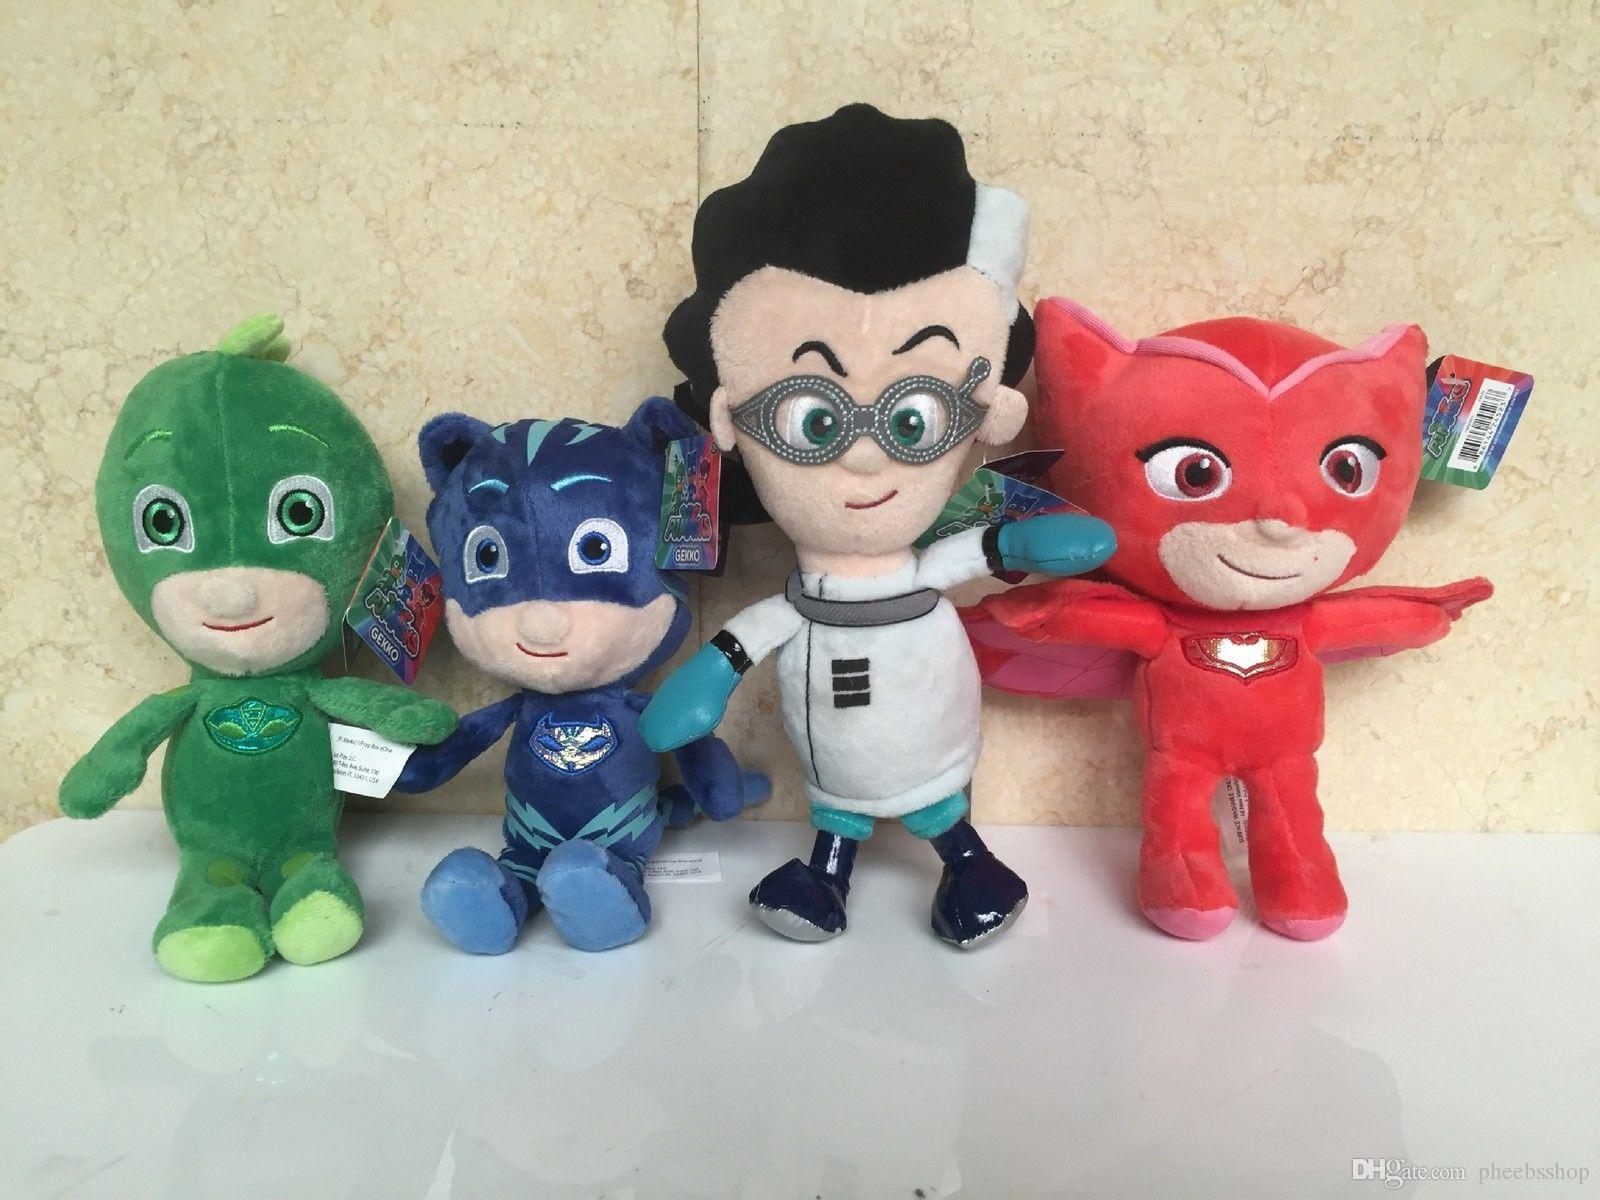 4pcs-set-8-pj-masks-mask-plush-toy-owlette